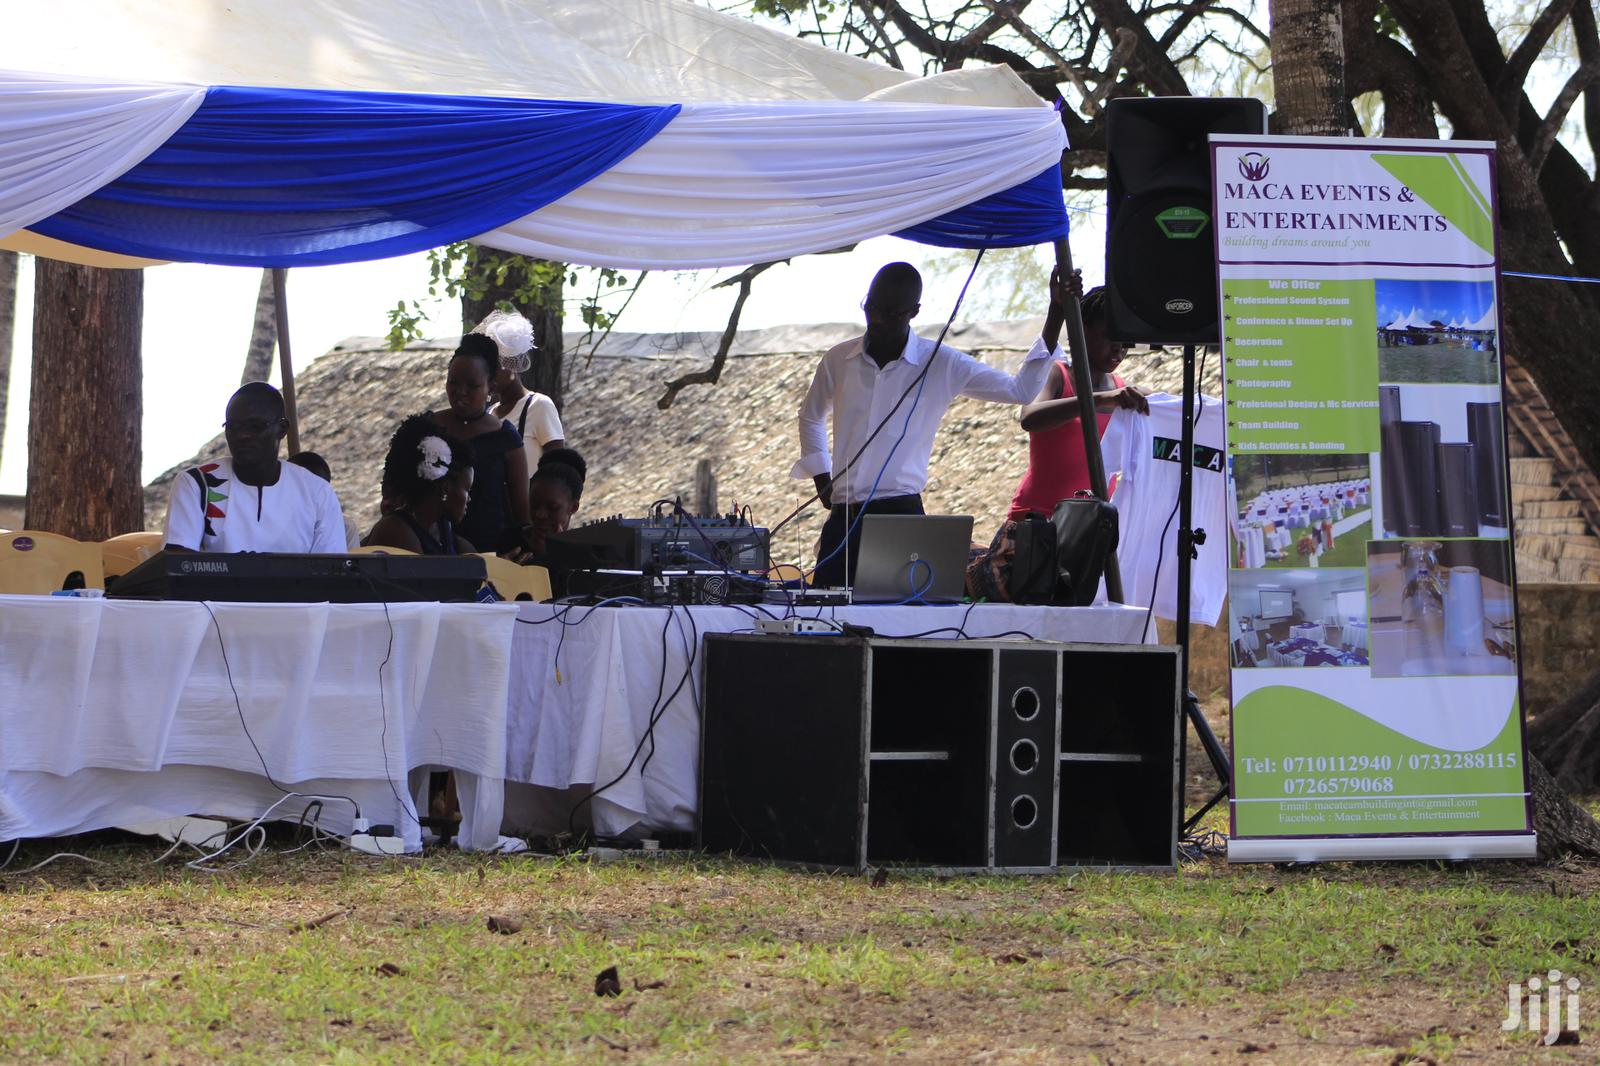 Pa Soud Systems, Dj And Mc Services | DJ & Entertainment Services for sale in Mvita, Mombasa, Kenya